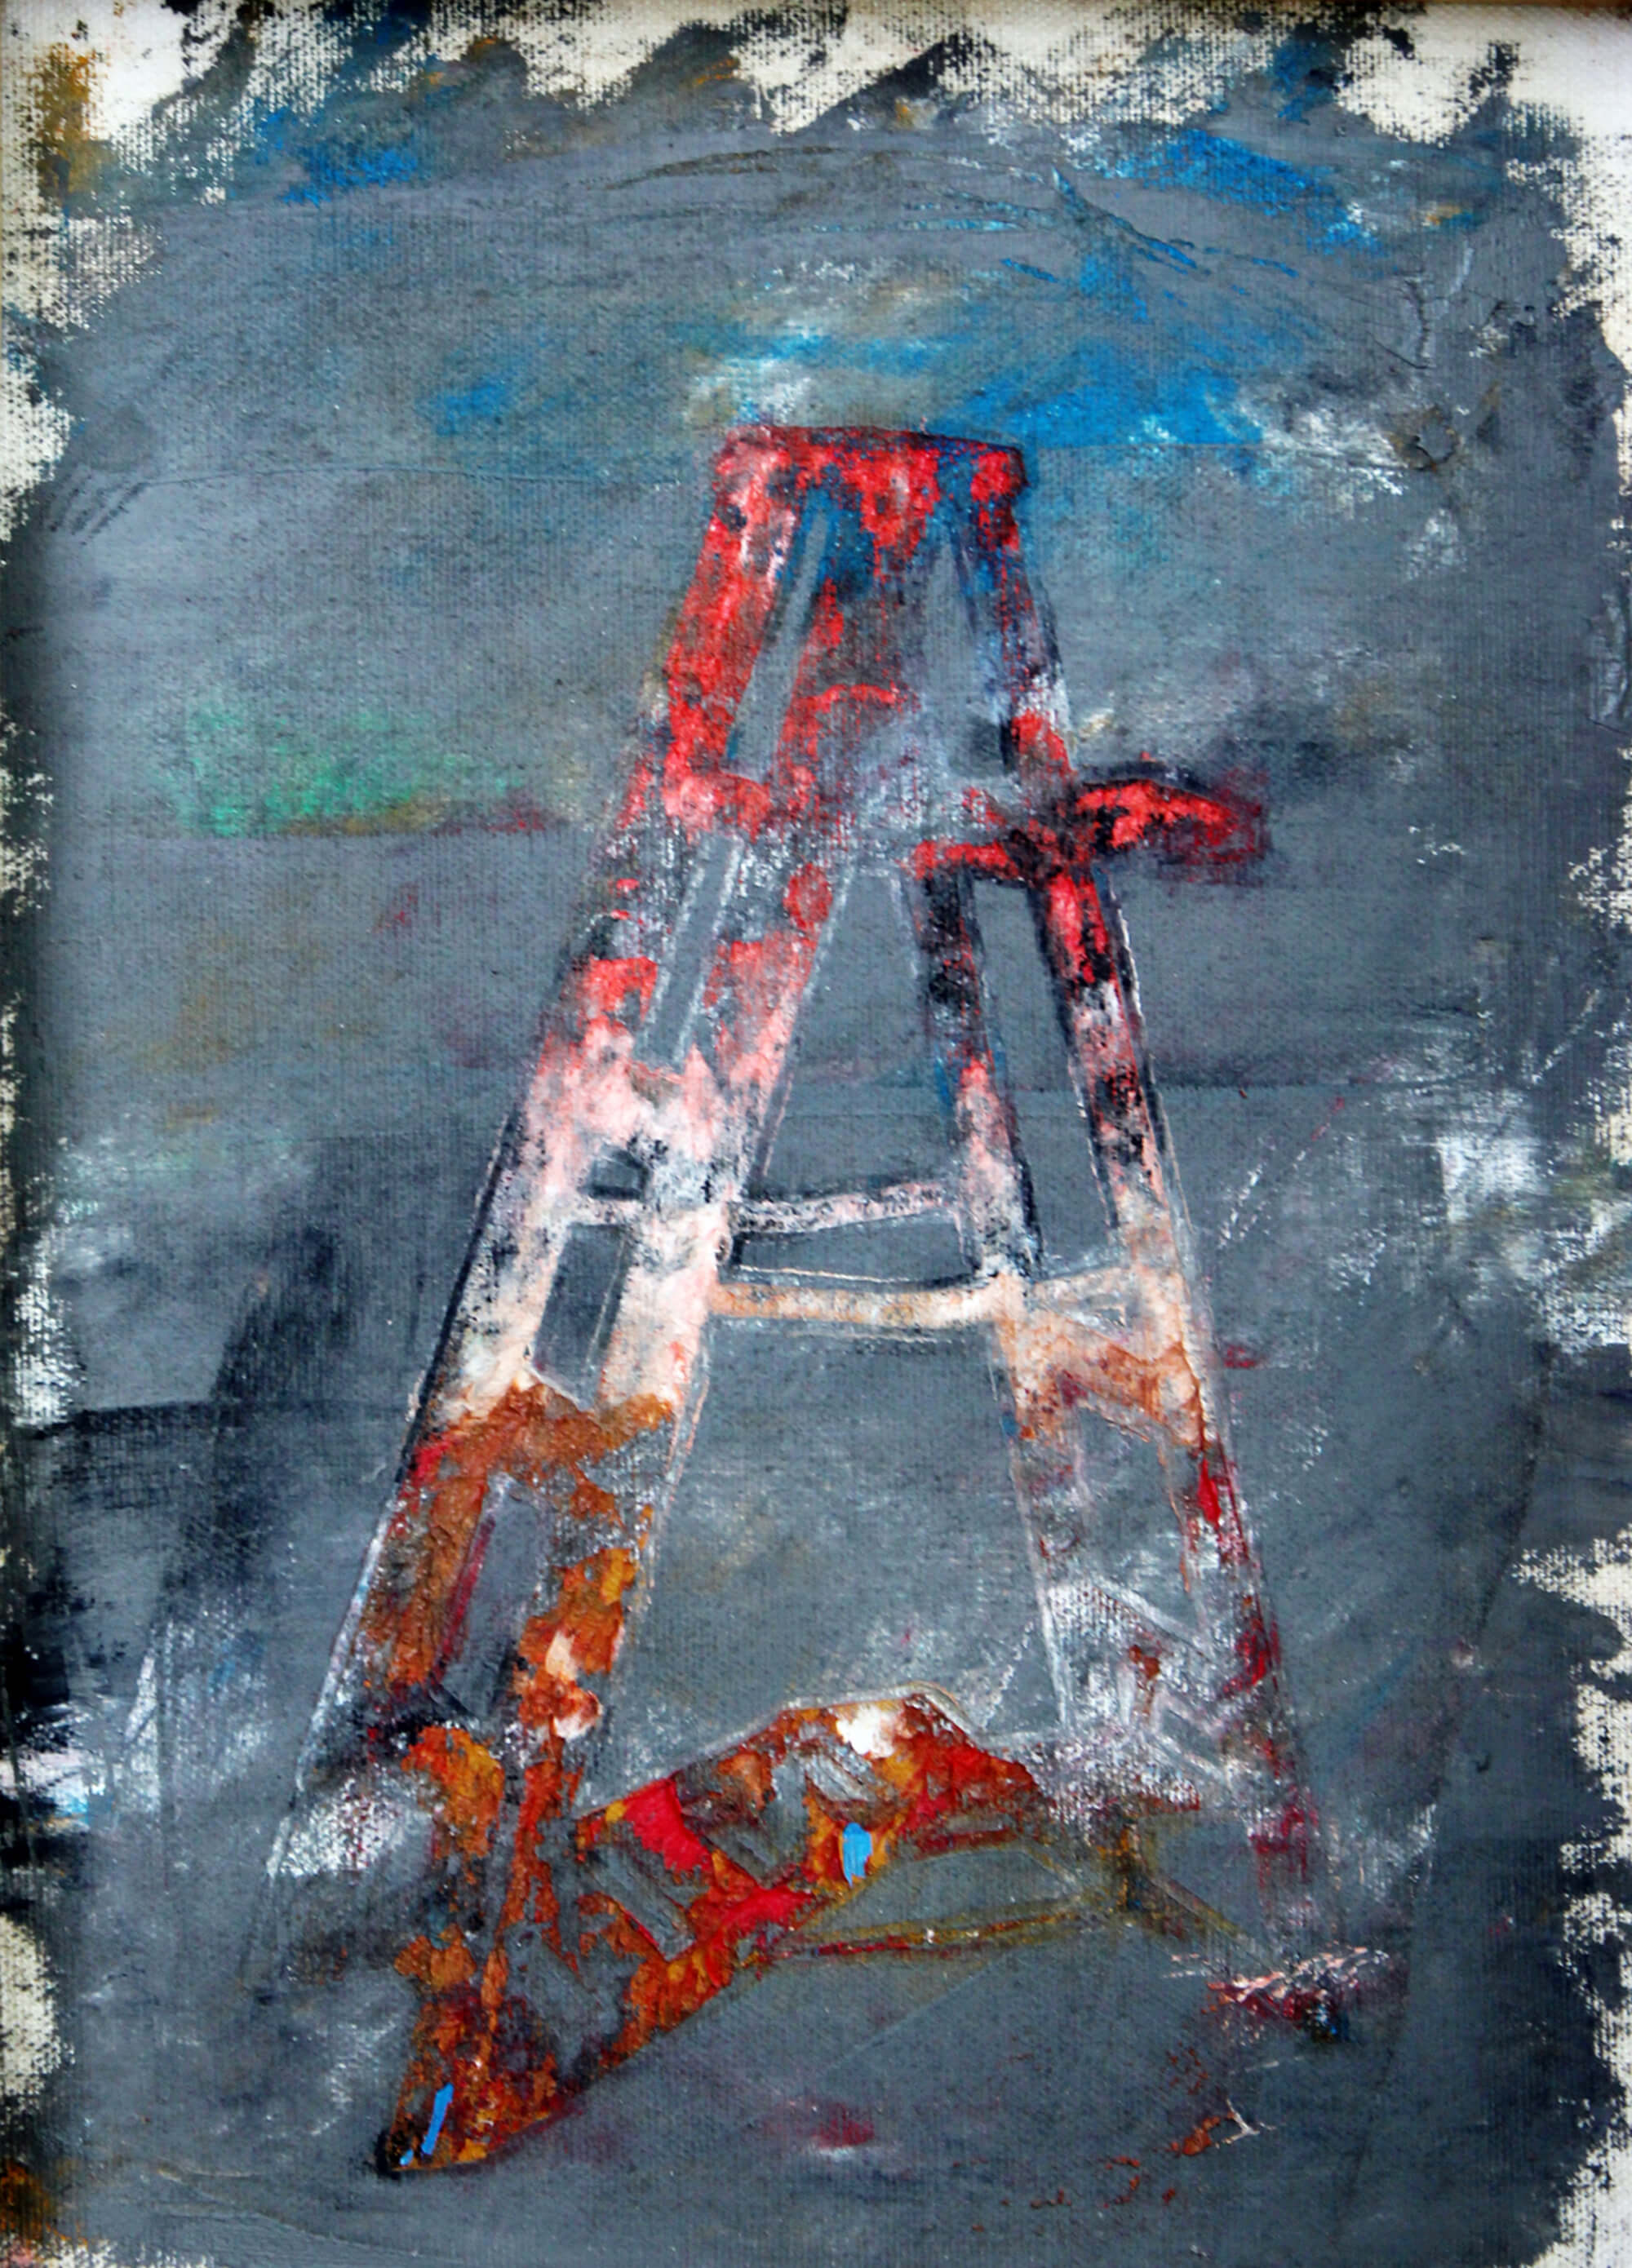 Acrylic painting of red and white stepladder with gray scale background as metaphor of ascending by Ludwig Medina